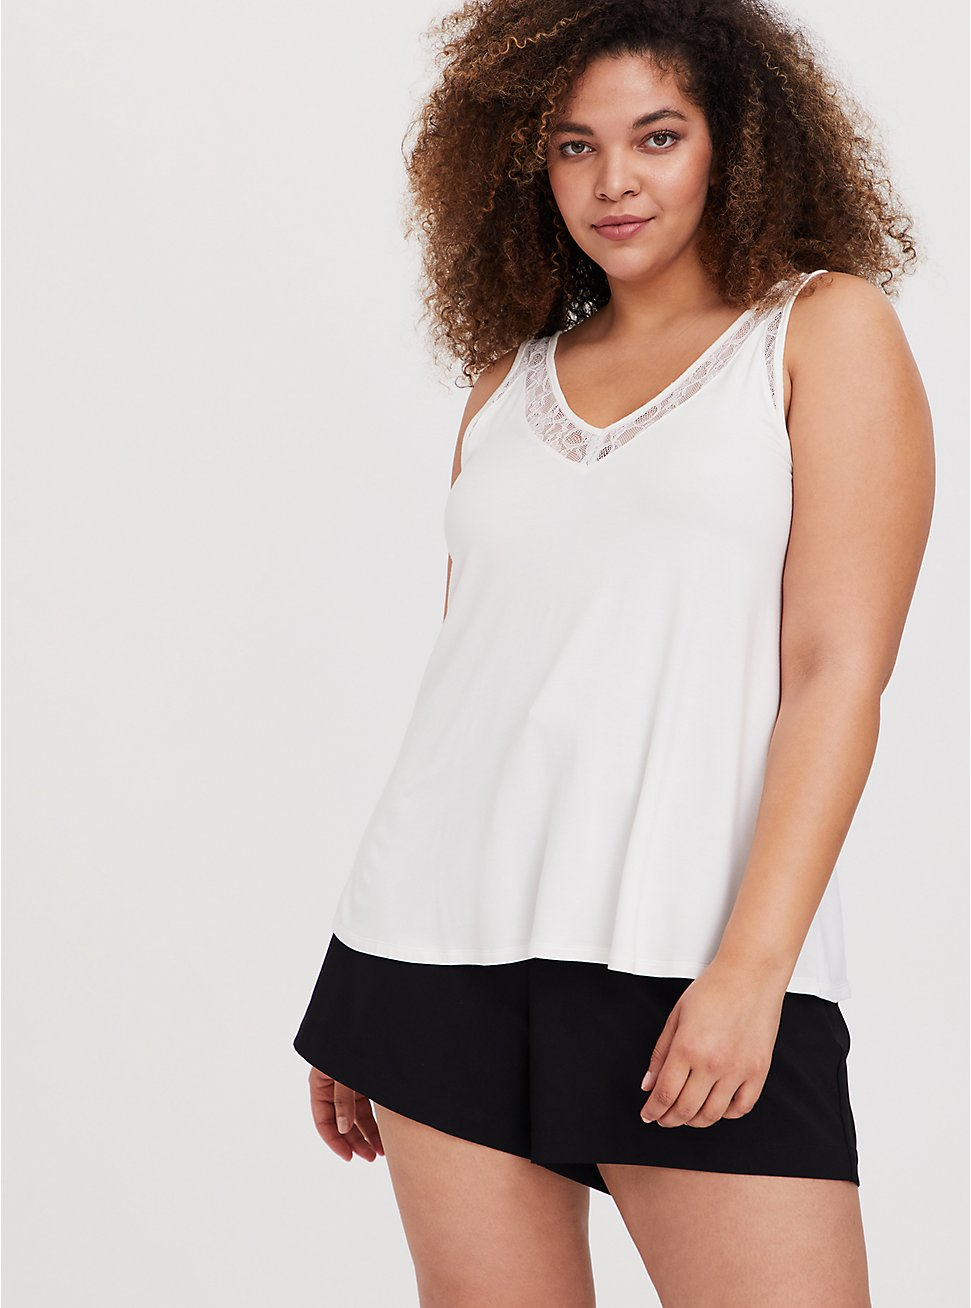 Super Soft Ivory Lace Inset Tank, CLOUD DANCER, hi-res